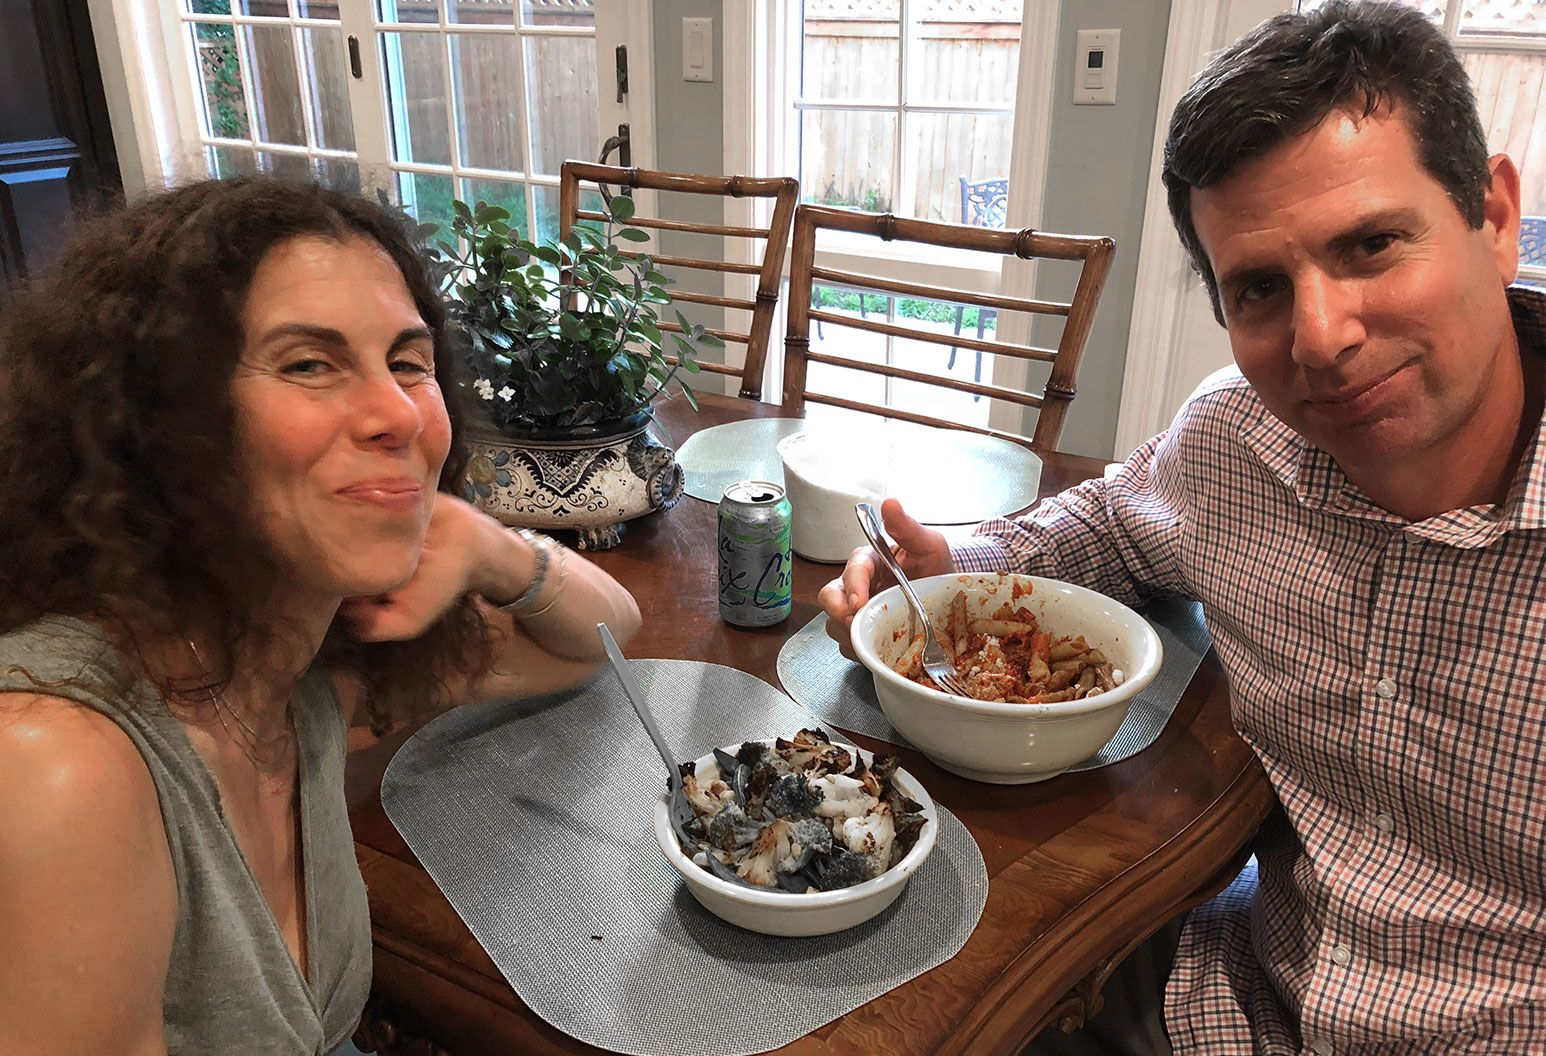 A man and woman smiles for the camera as they sit at a dining table with bowls of pasta and seafood in front of them.